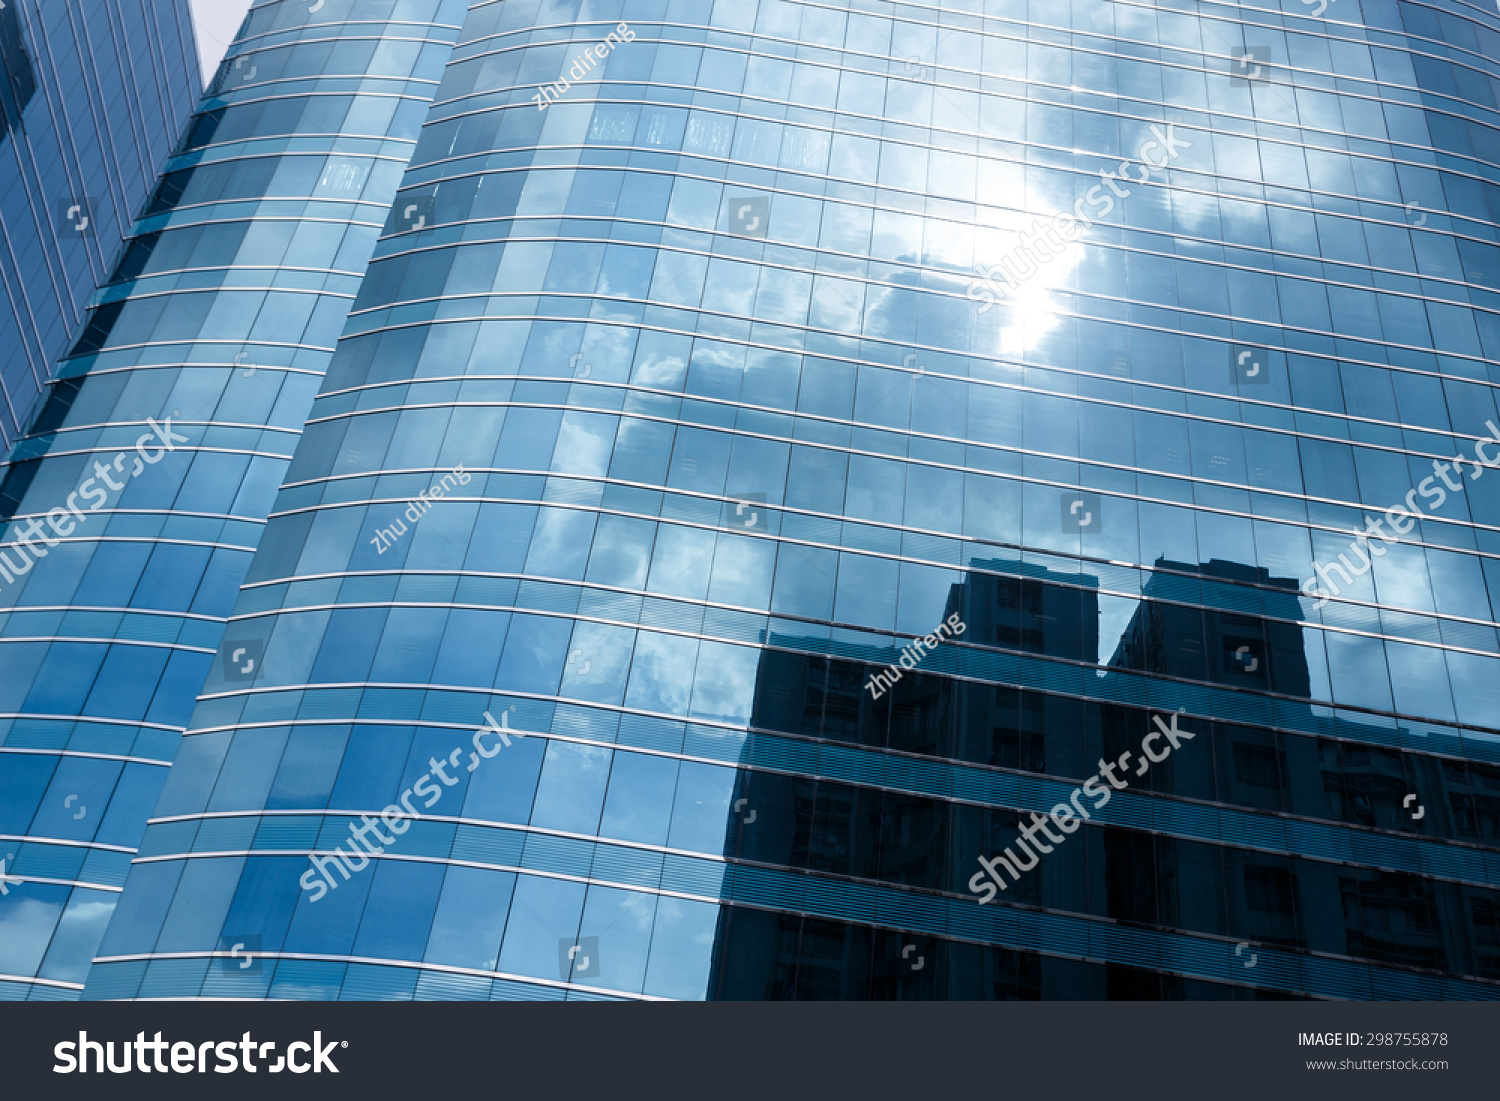 Low Angle View Of Modern Office Buildings Photo: Low Angle View Modern Office Building Stock Photo